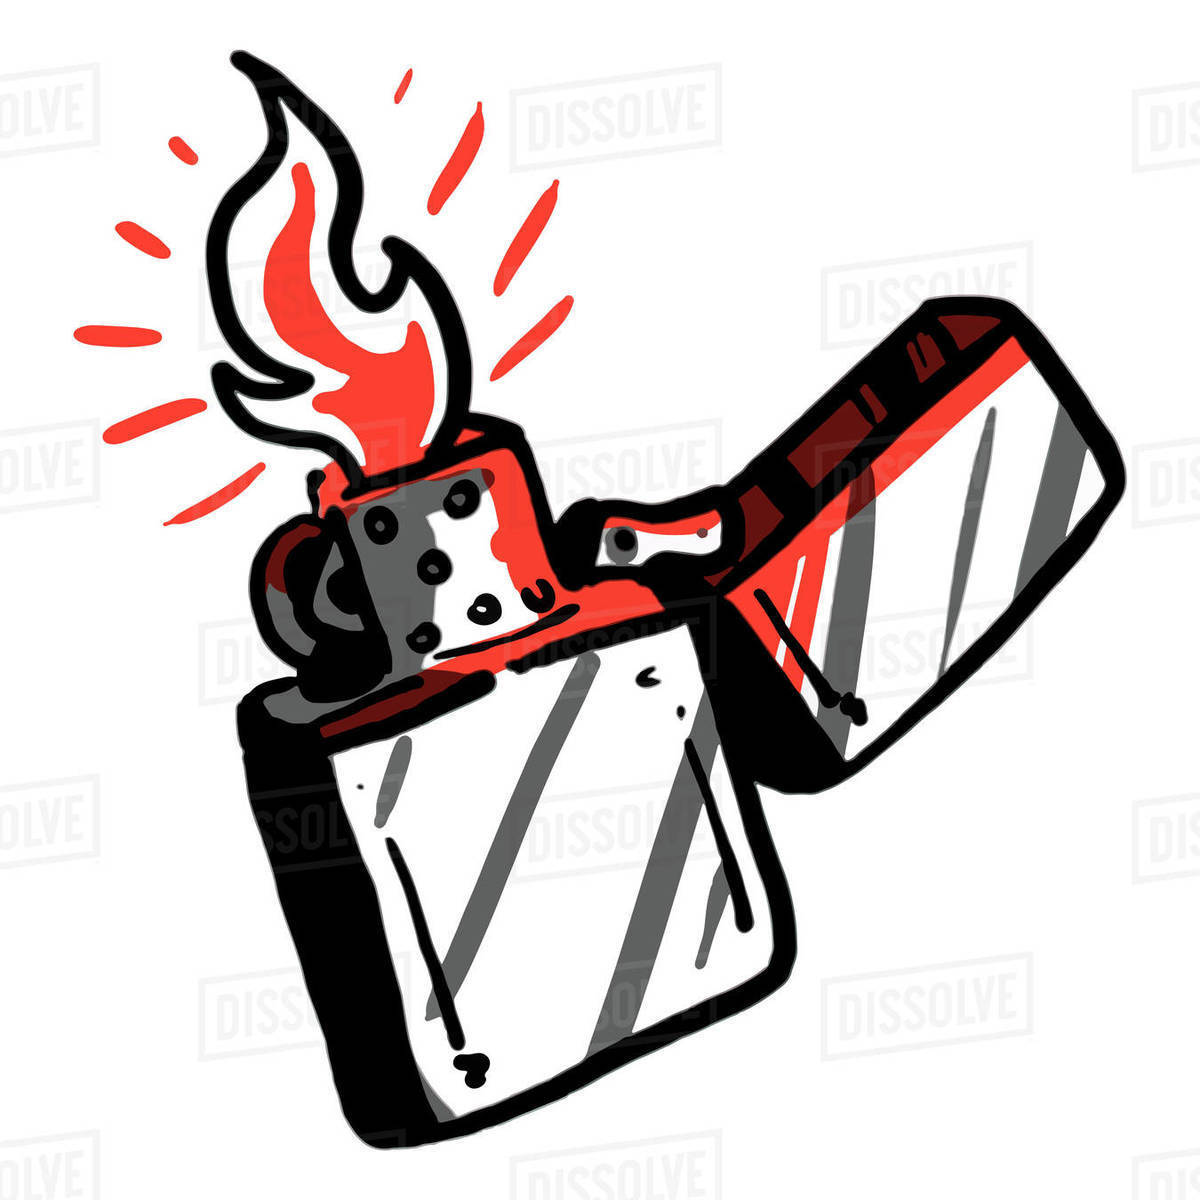 Illustration of zippo lighter with flame isolated on white background Royalty-free stock photo